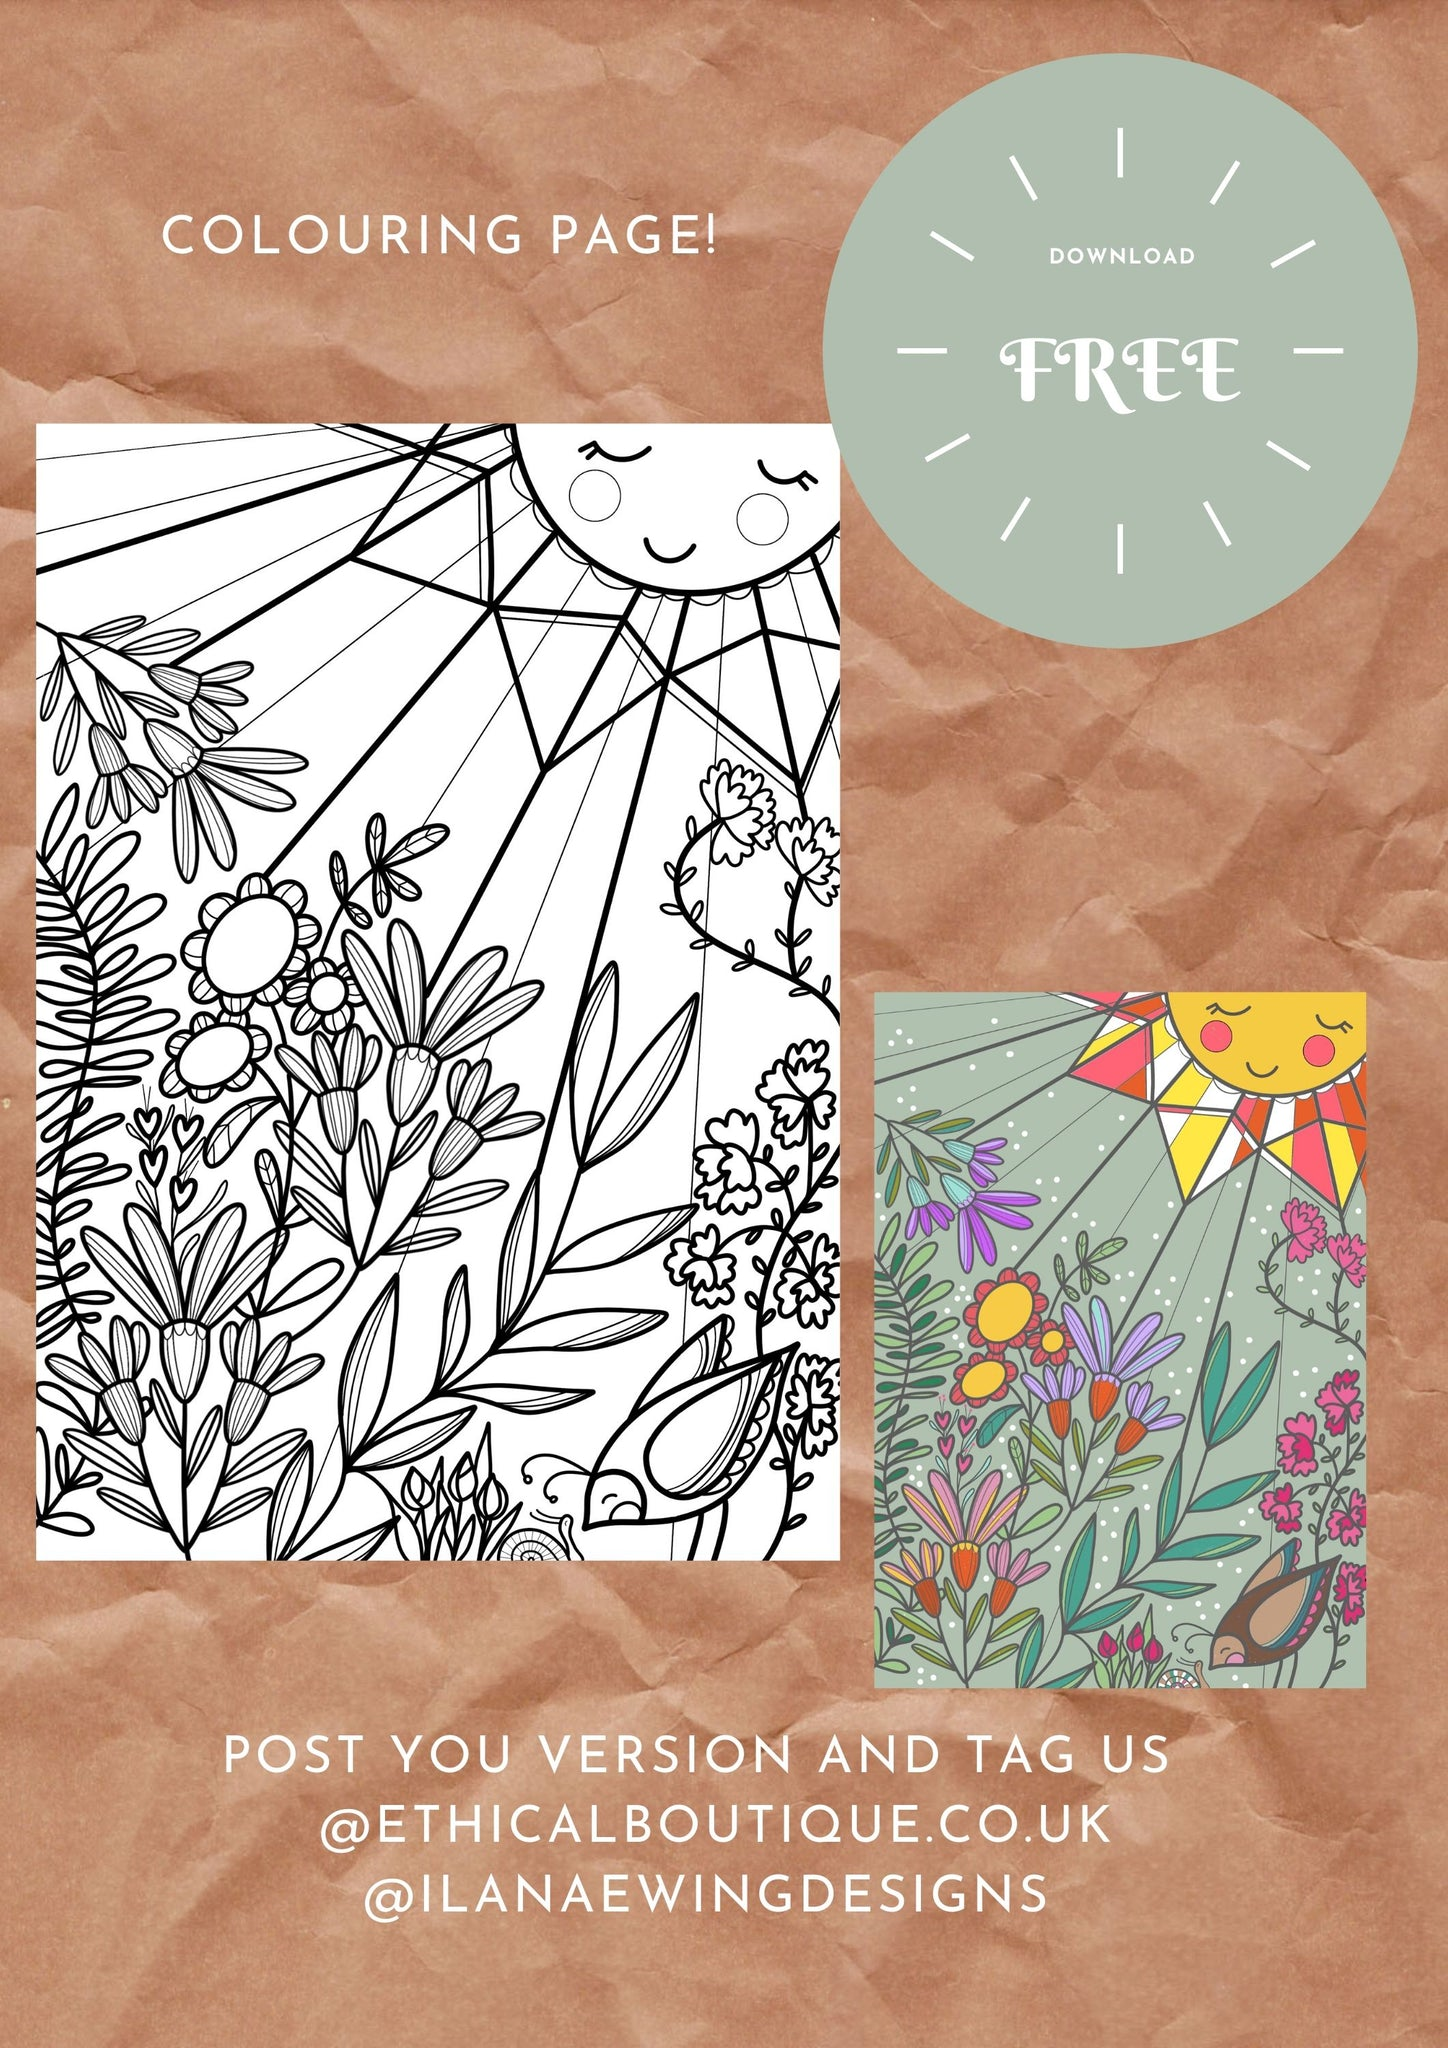 FREE Colouring Downloadable Artwork for Kids